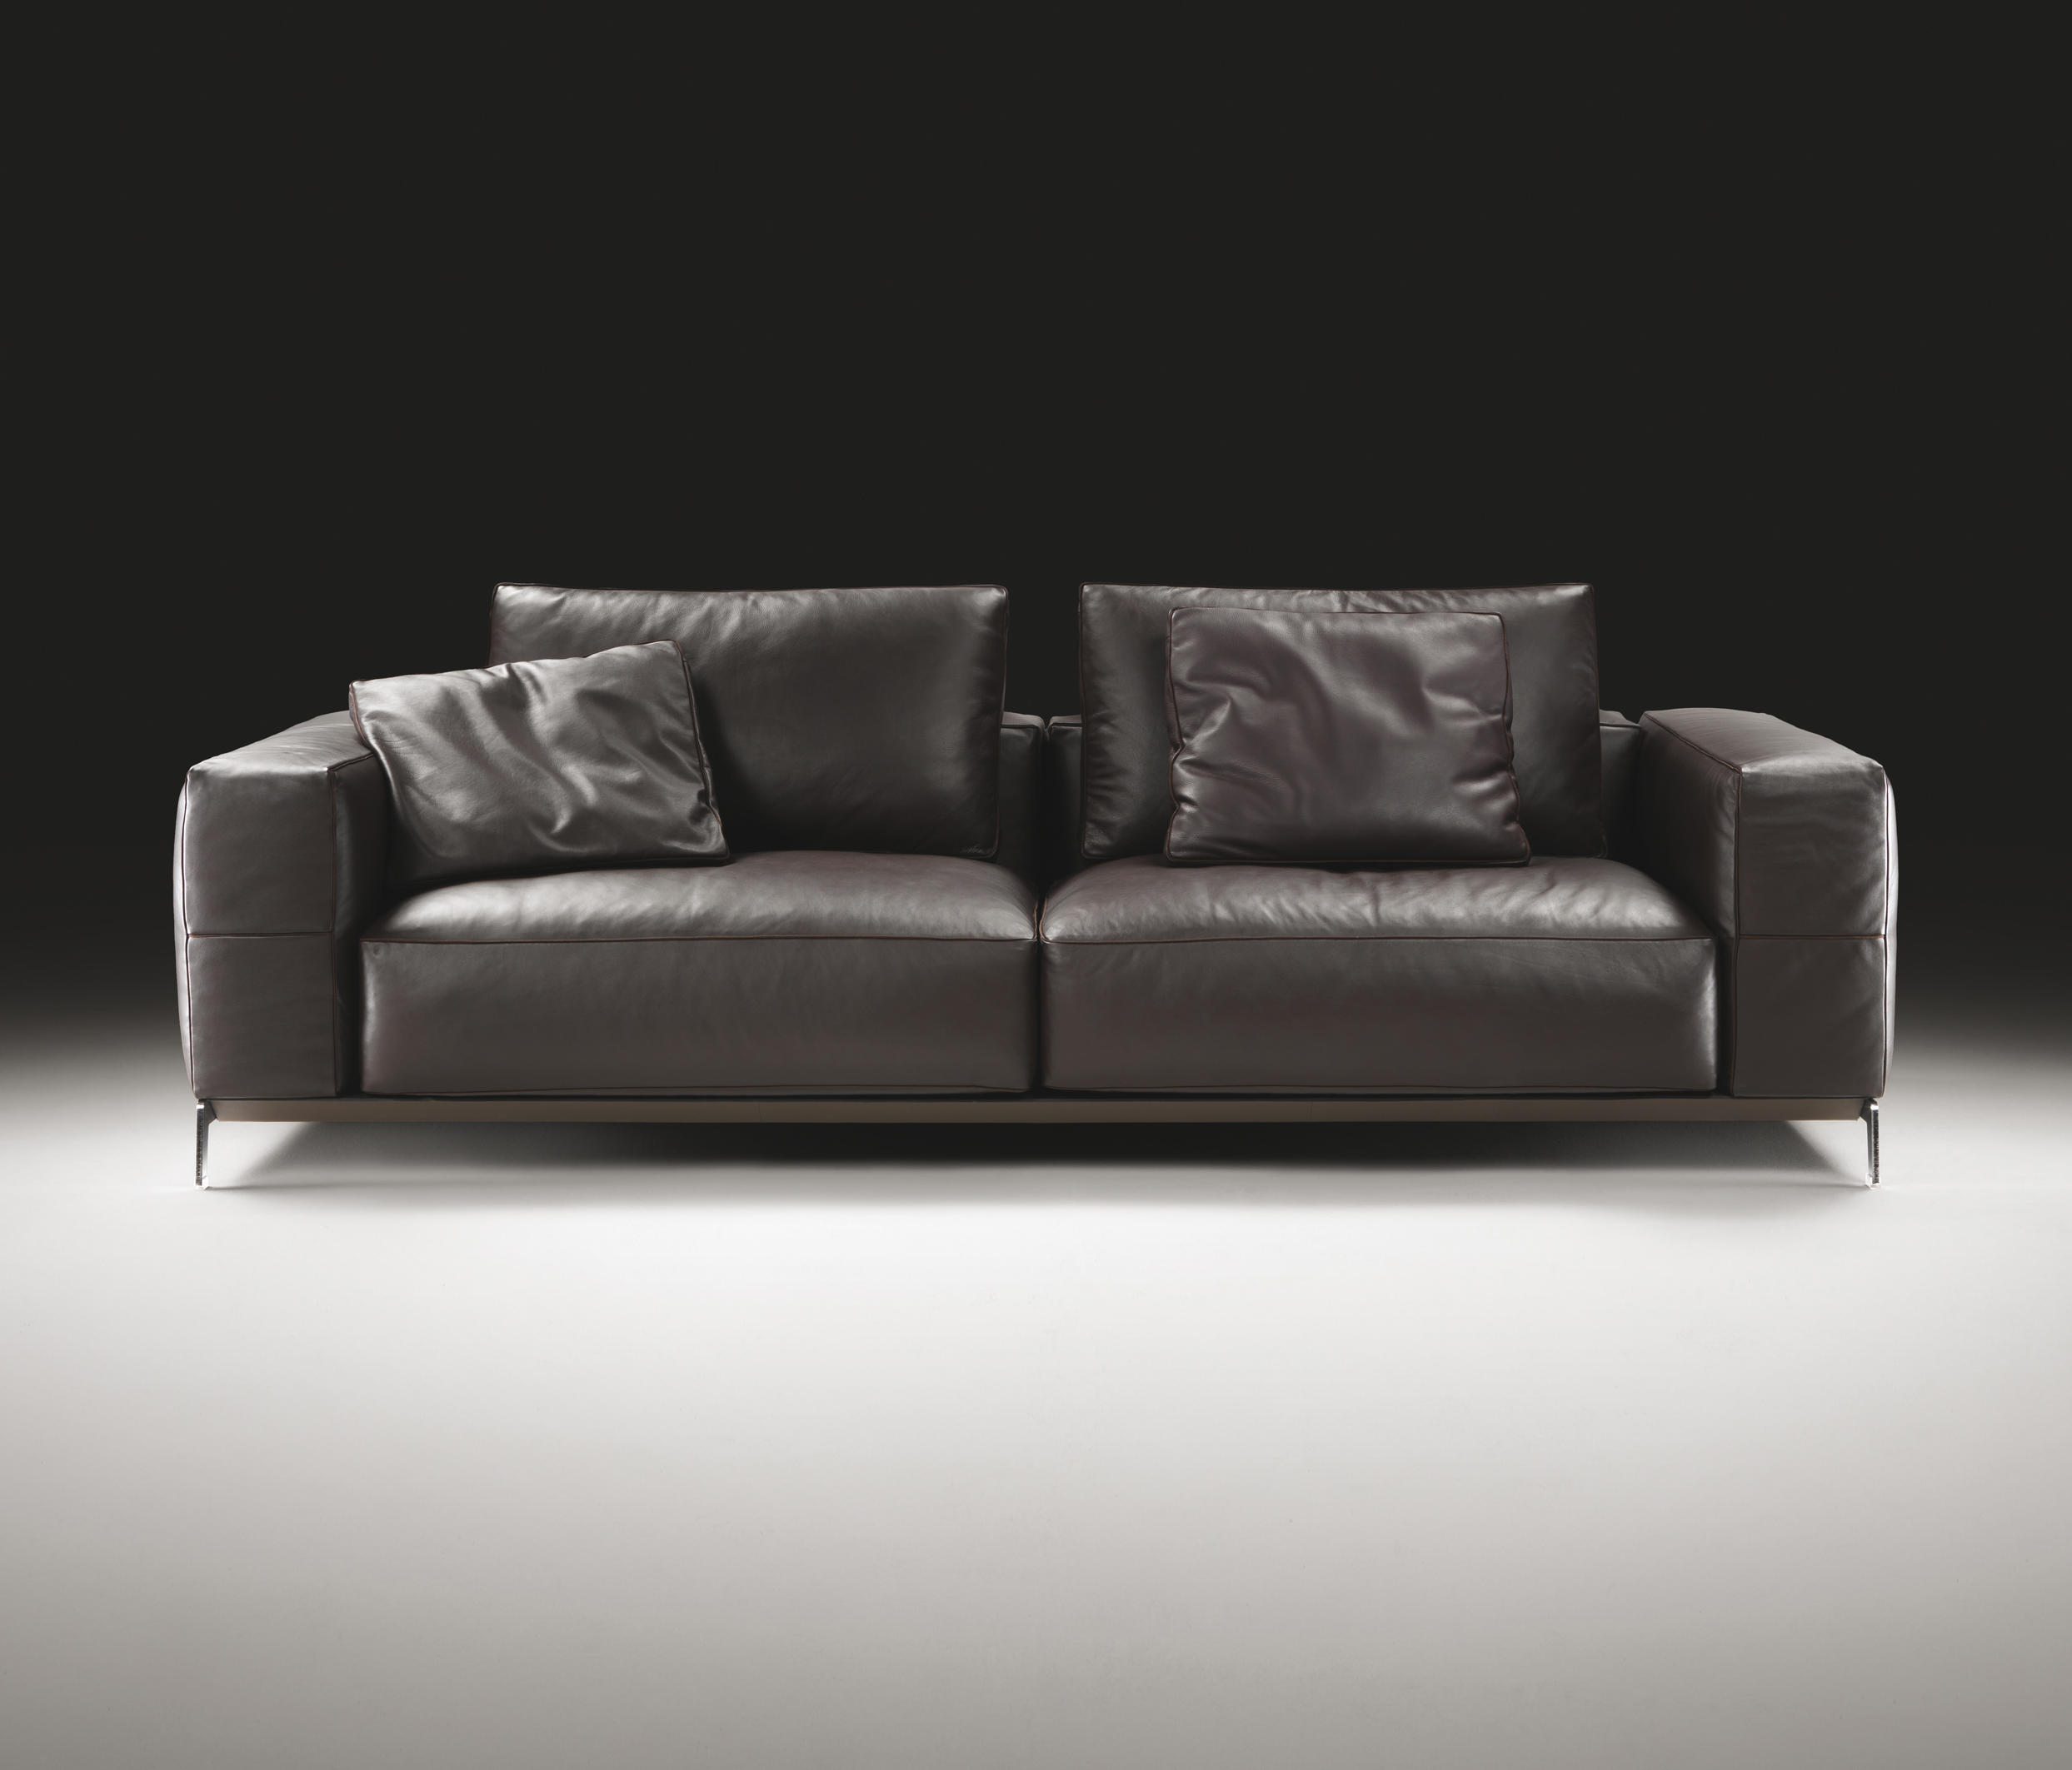 Flexform Sofas Home Design Ideas And